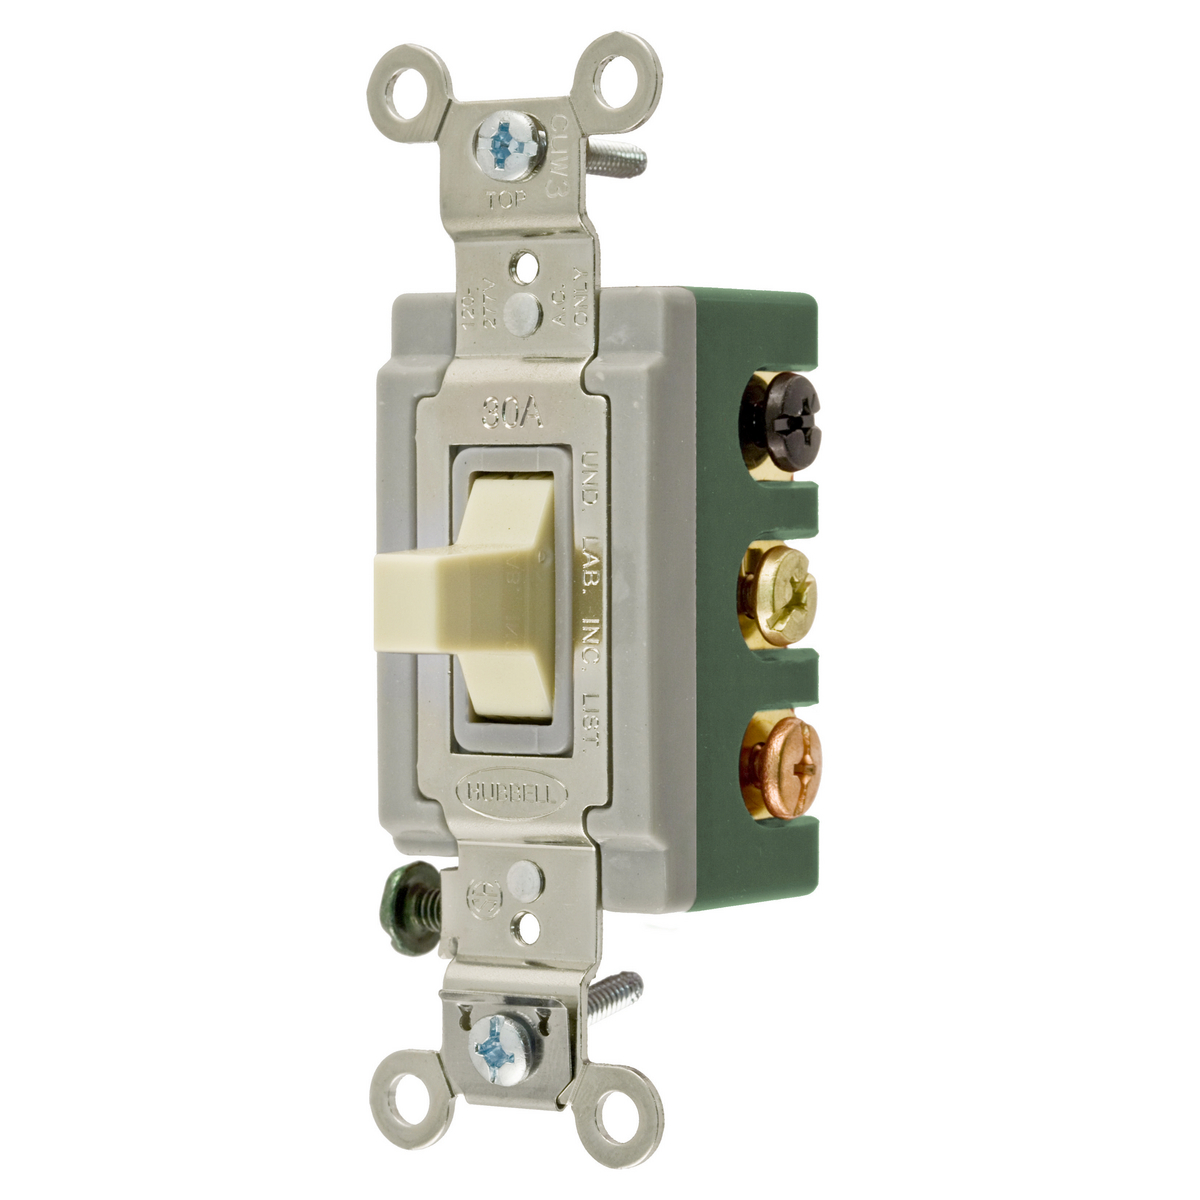 Bryant Double Pole Switch Wiring Just Another Diagram Blog Outlet With Leviton Switches 3025i Industrial Series Electrical Rh Hubbell Com 2